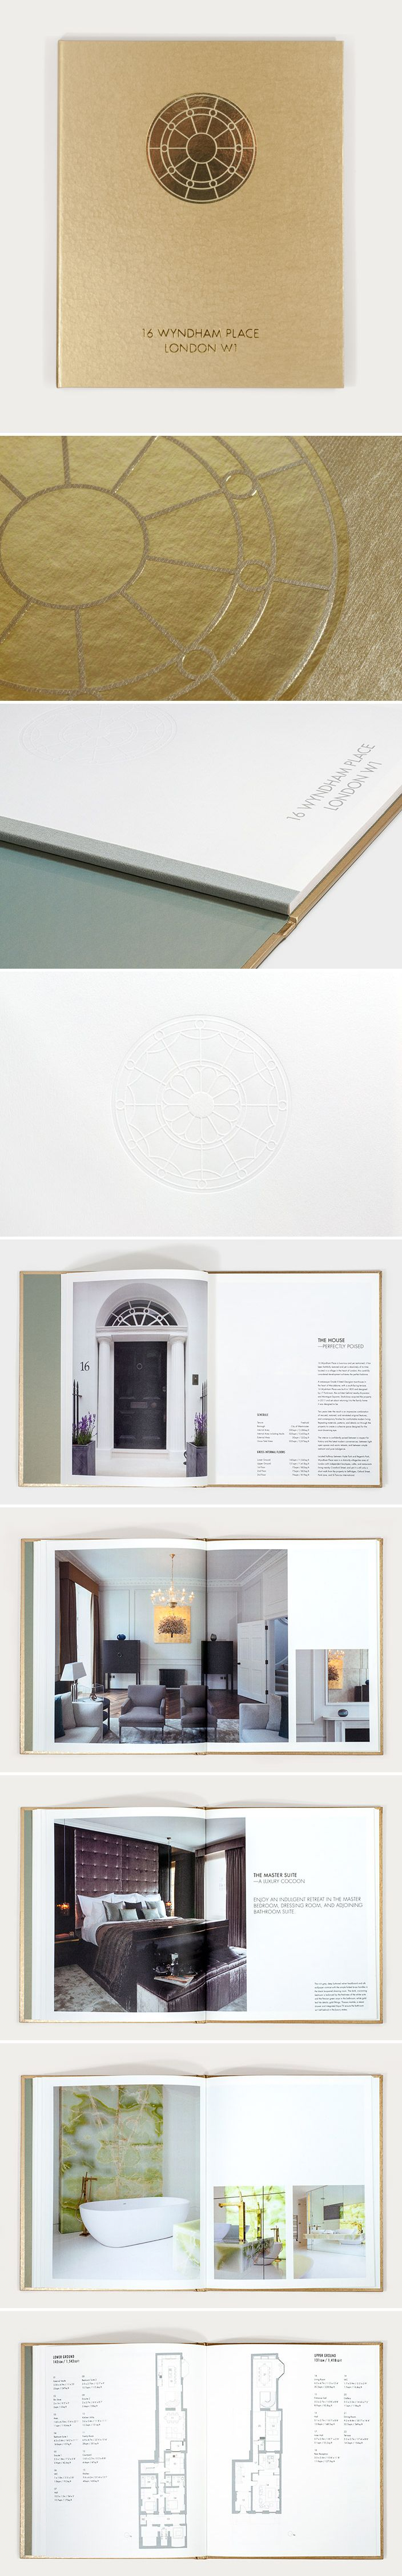 Luxury coffee table book for property developers Studioloop by Phage, launching their latest development to market. One of the most striking features—a beautifully restored fanlight—is developed into a visual motif for the book; foil-blocking it on the front cover, debossing it on the title page, and referencing it in the photography throughout. View the full project at: www.phagedesign.co.uk/showcase/luxury-brochure-design.php